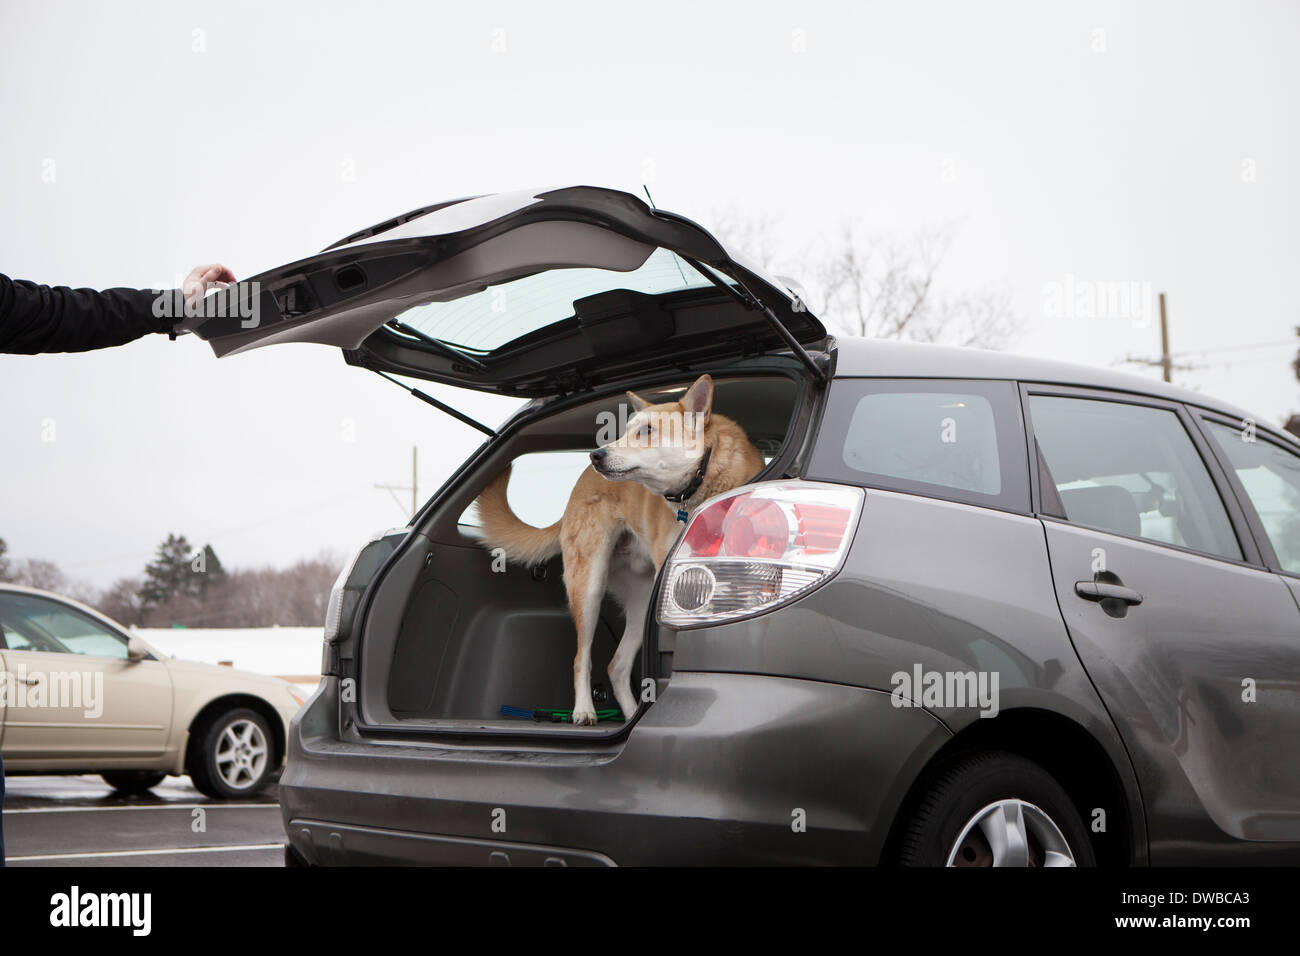 Cross bred alsatian dog in car boot - Stock Image